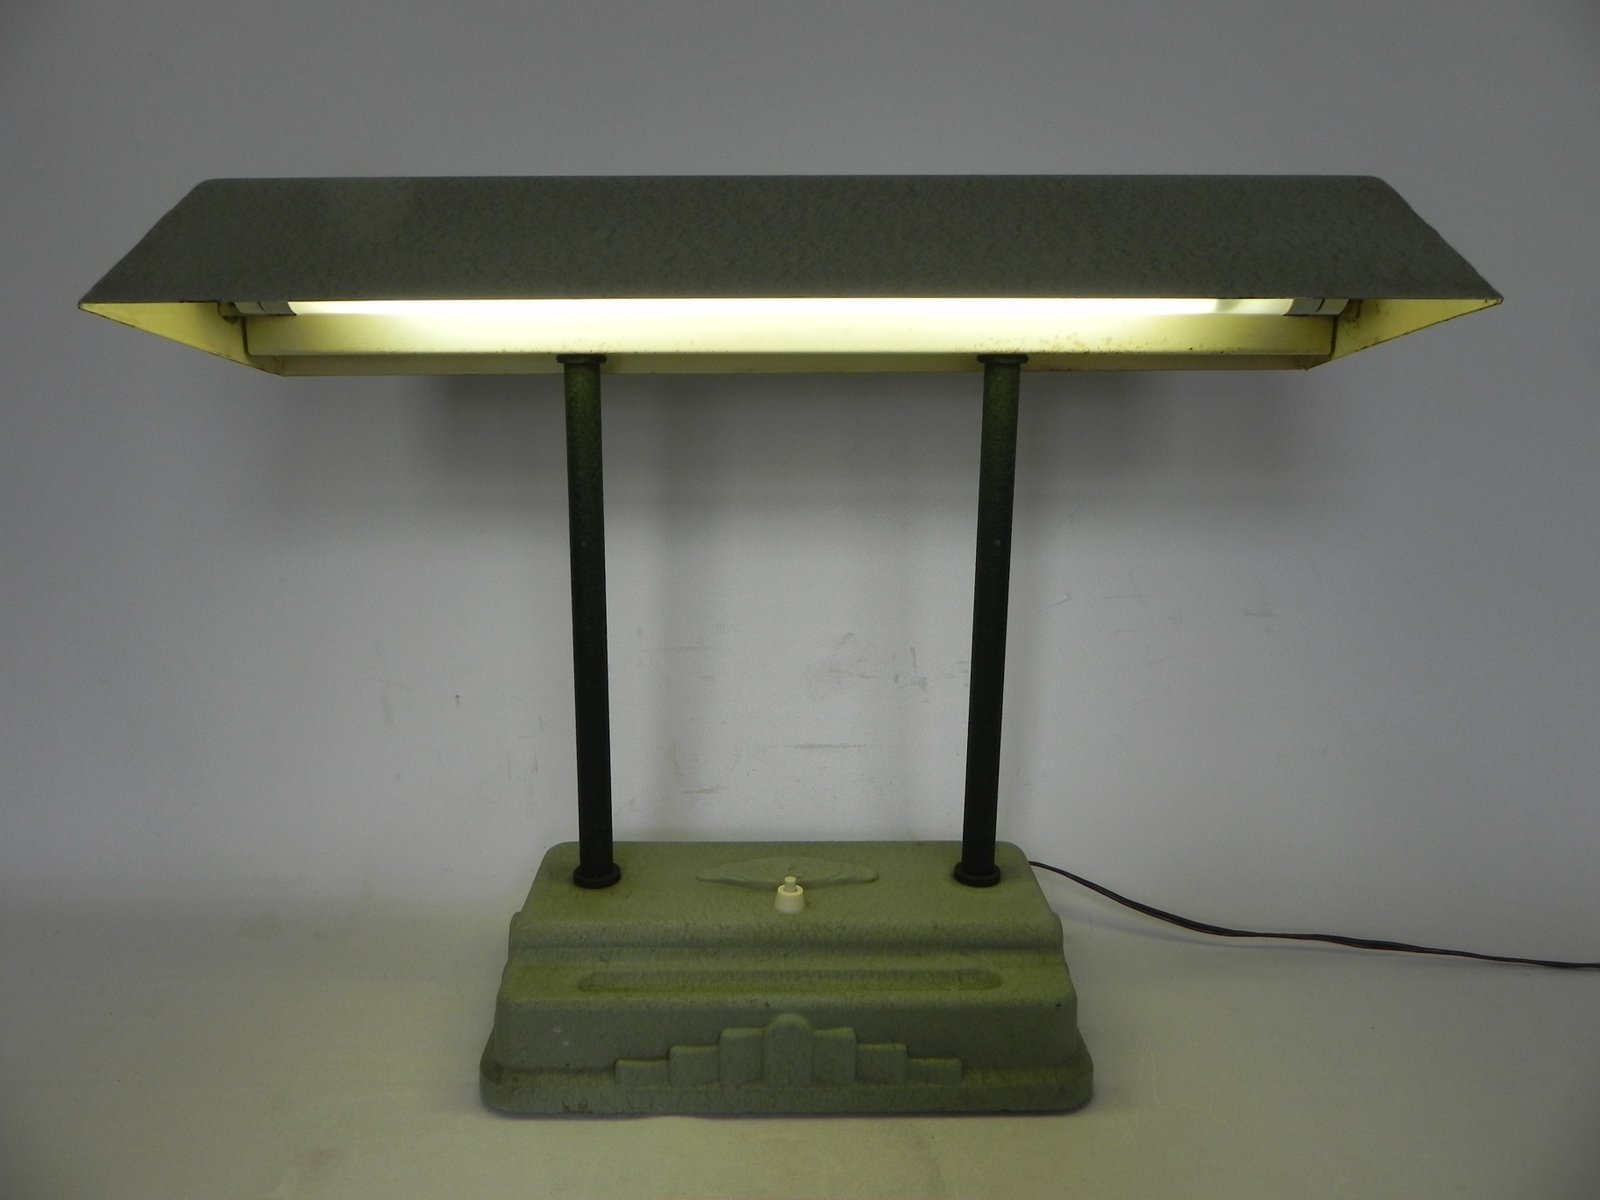 Art deco desk lamp from sevadac 1930s for sale at pamono art deco desk lamp from sevadac 1930s geotapseo Gallery